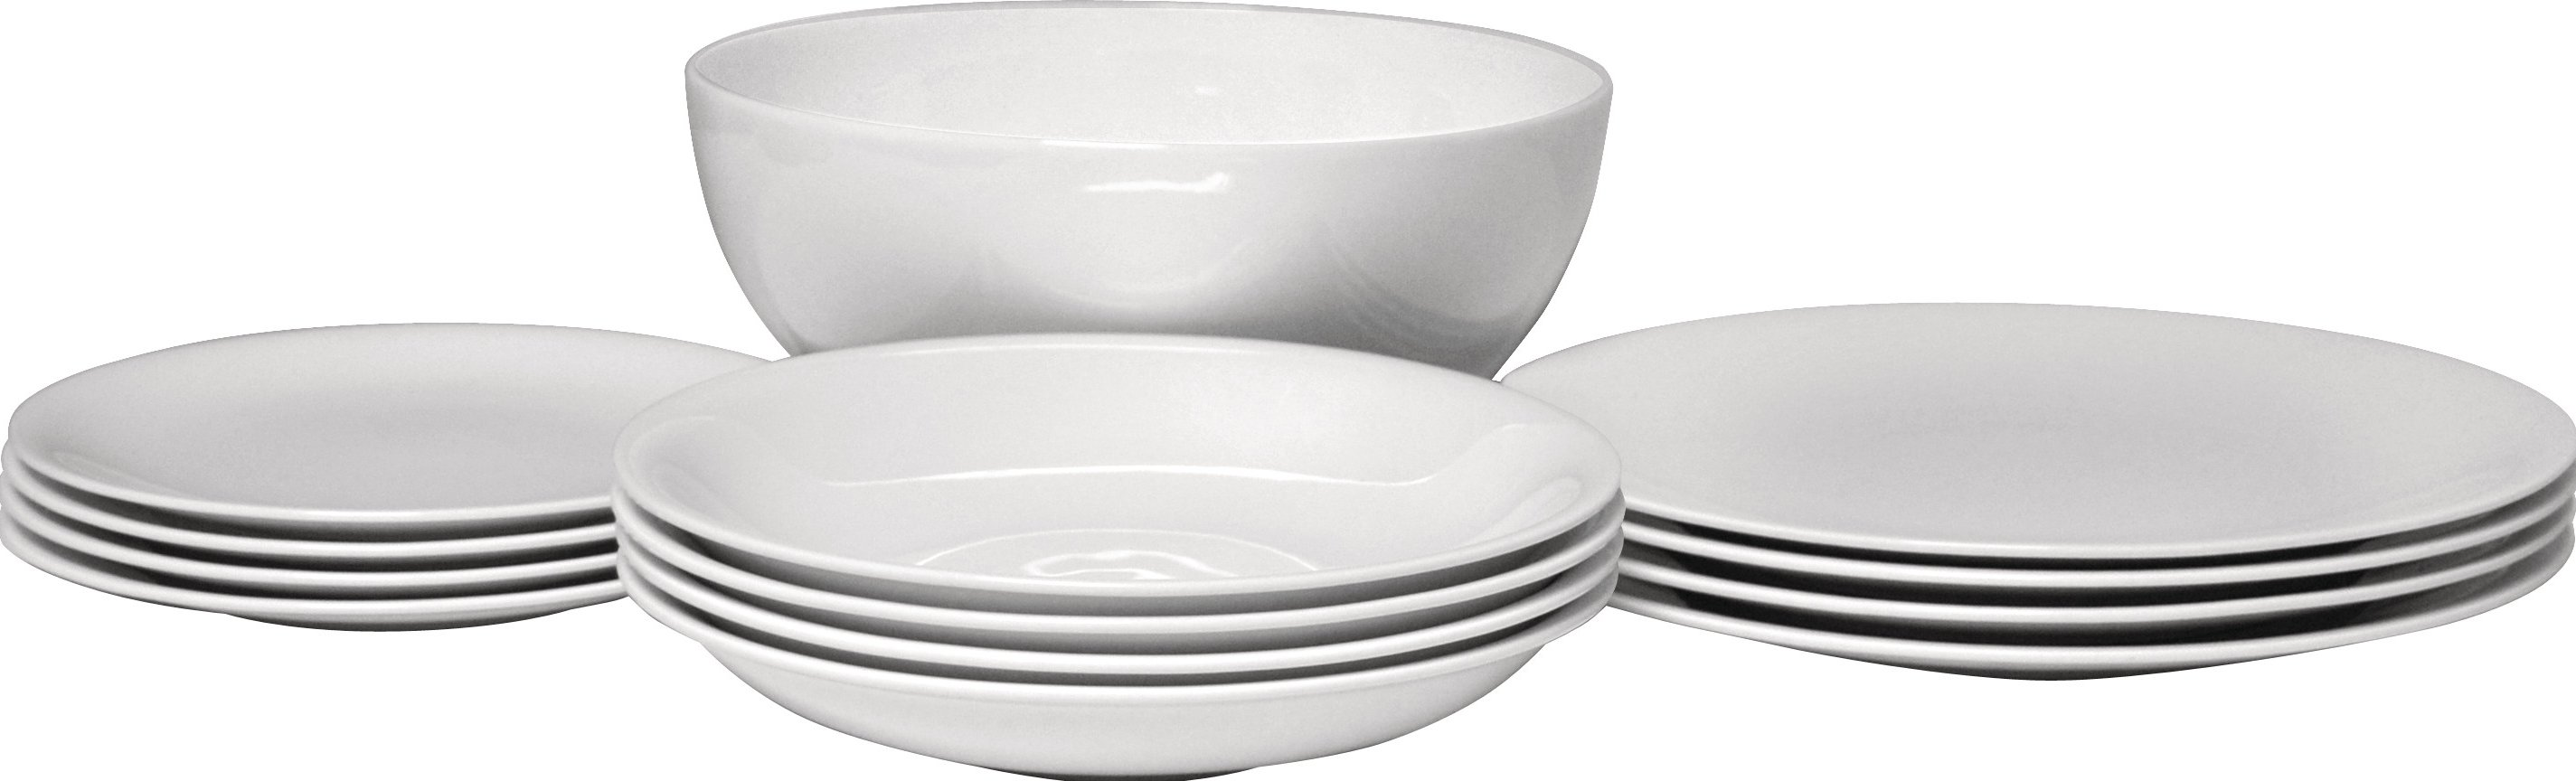 Alessi All-Time 13-piece dinner set